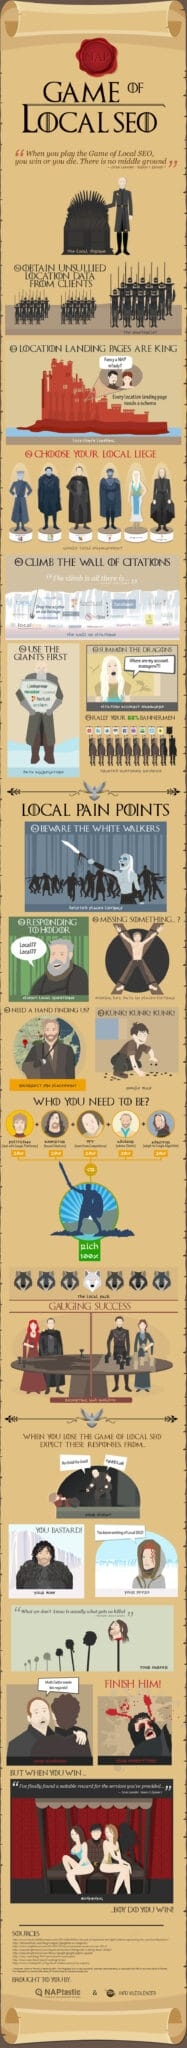 Infographie : le référencement local façon Game of Thrones